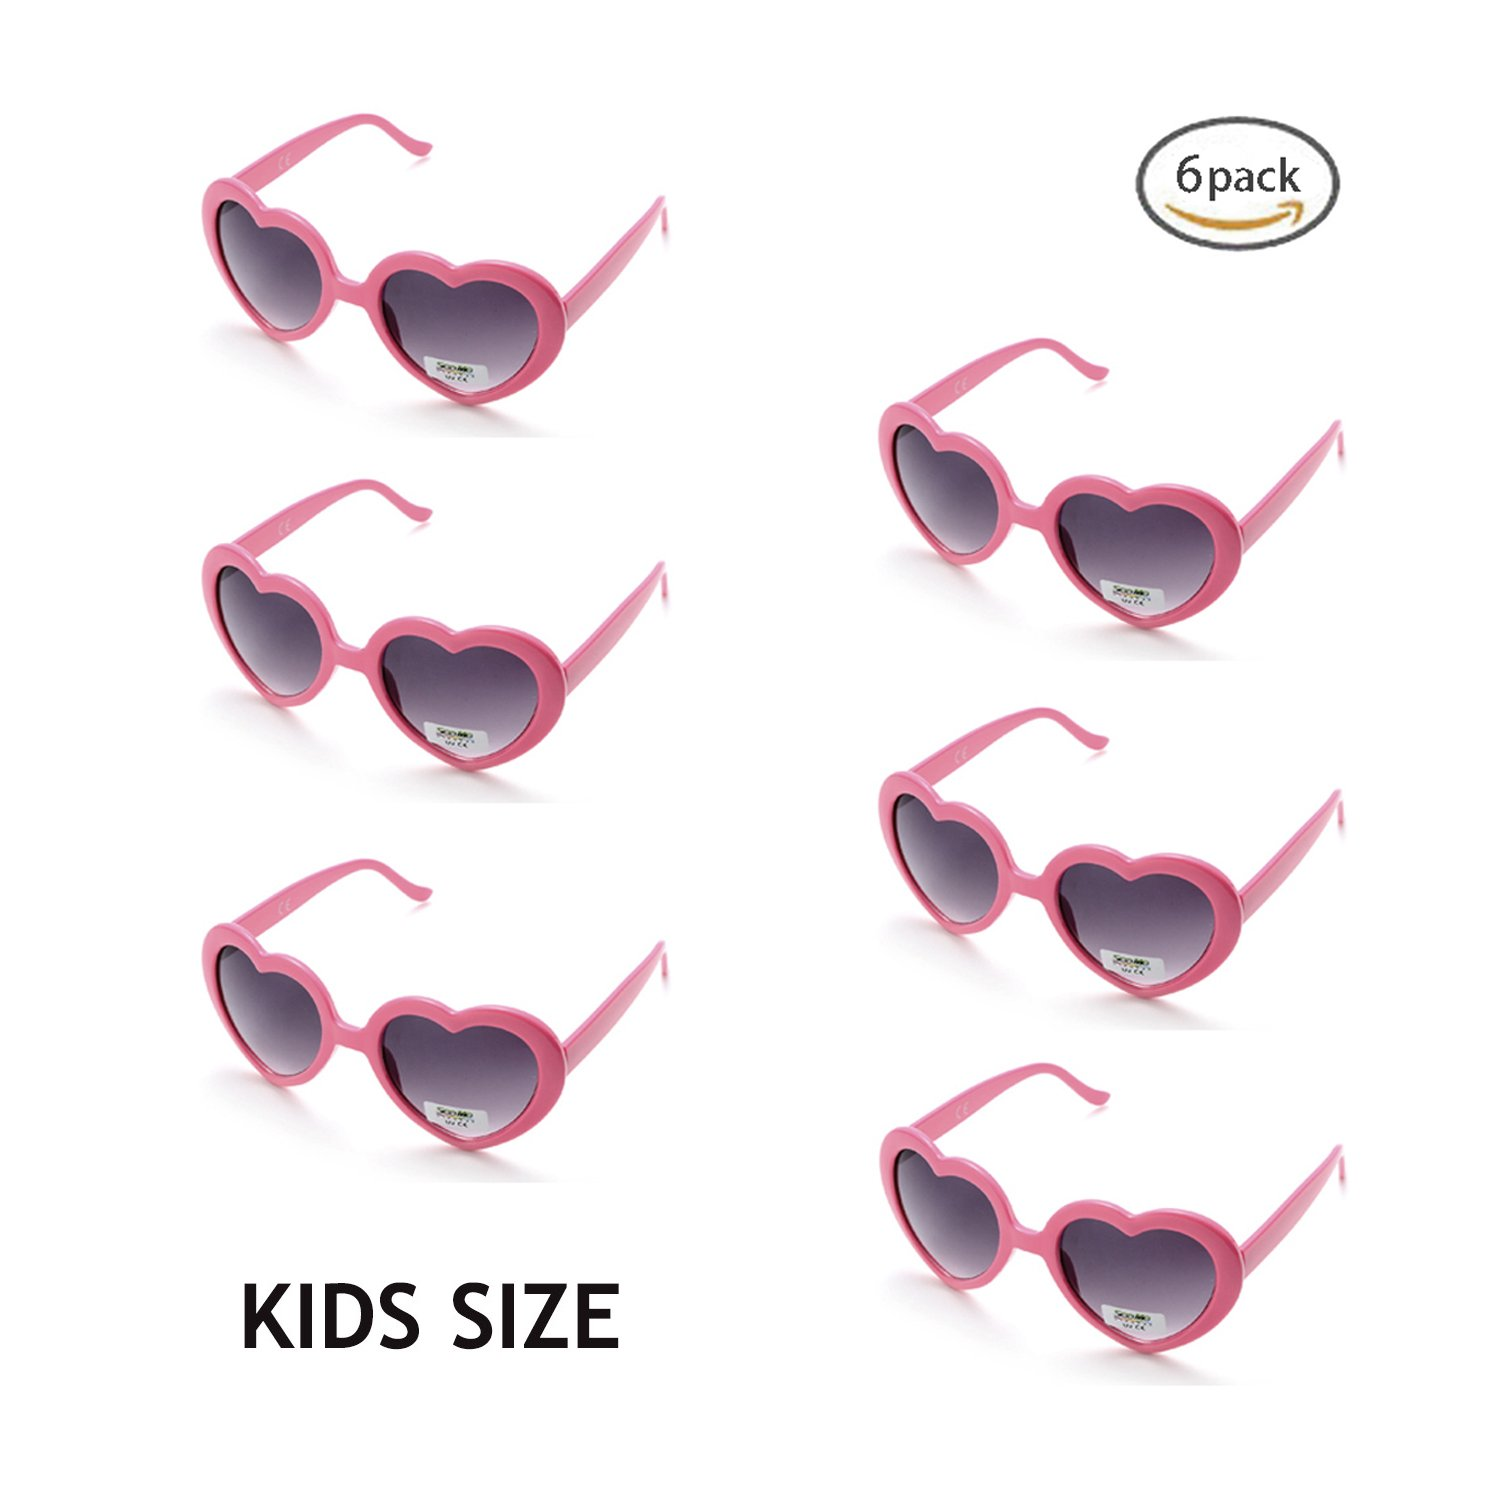 Onnea Multi Packs Classic Neon Colors Heart Shaped Party Favors Sunglasses Toddler Kids (6-Pack Pink)